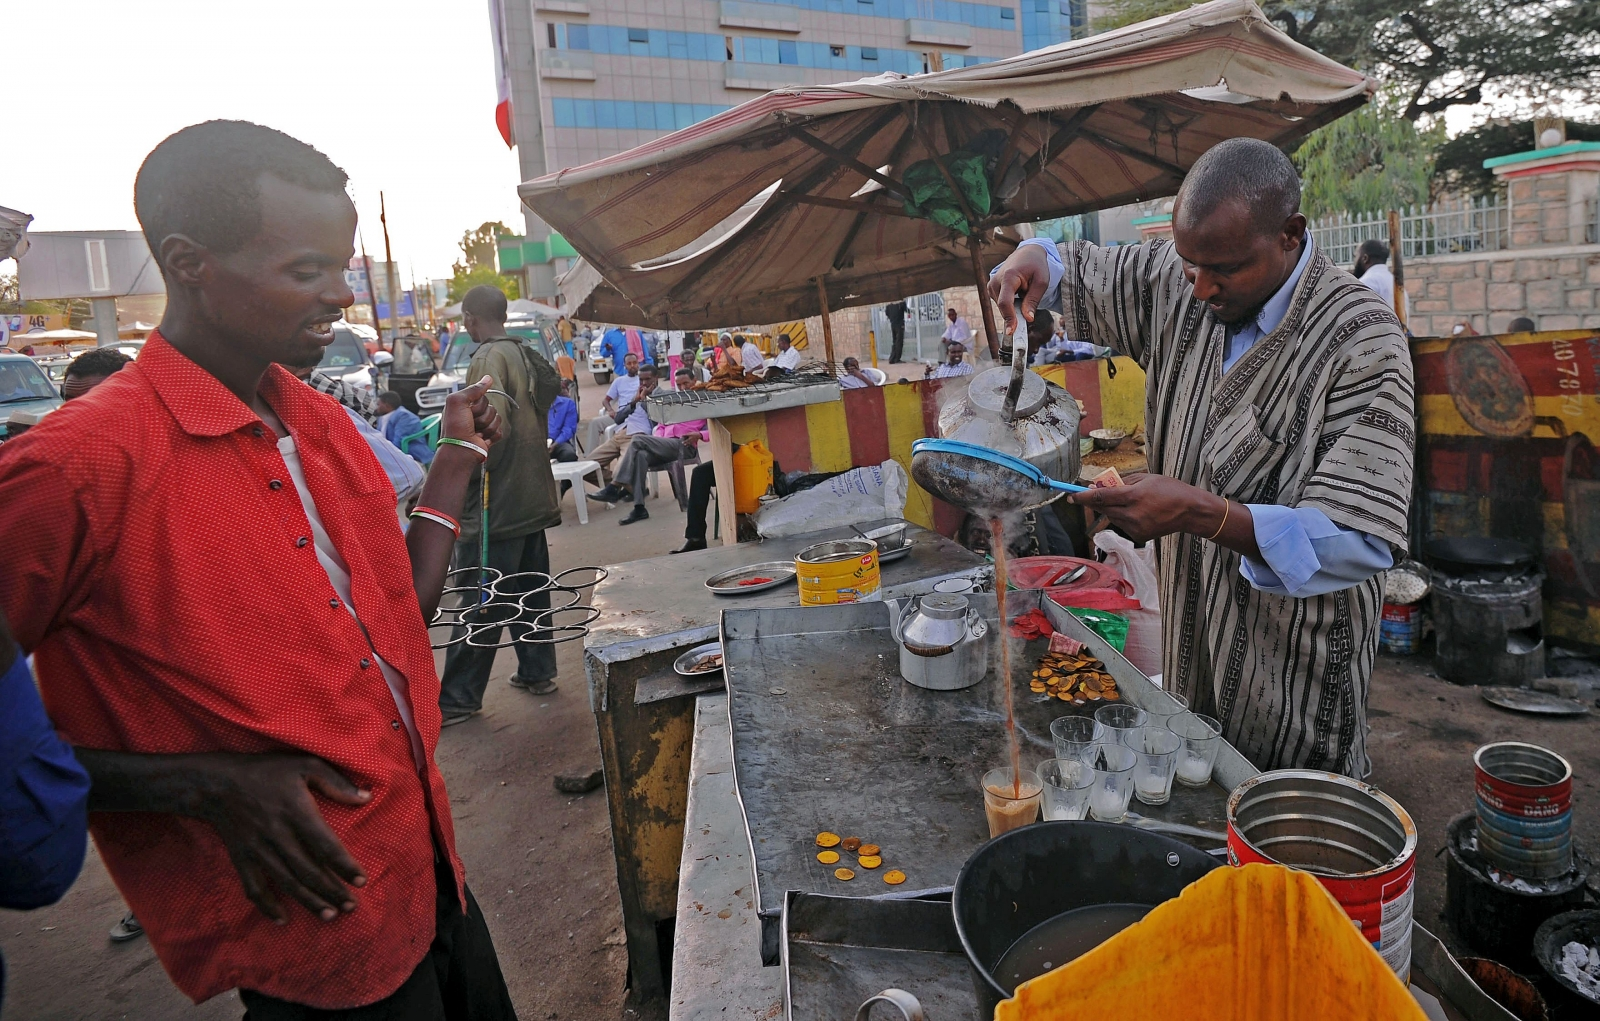 Hargeisa in Somaliland